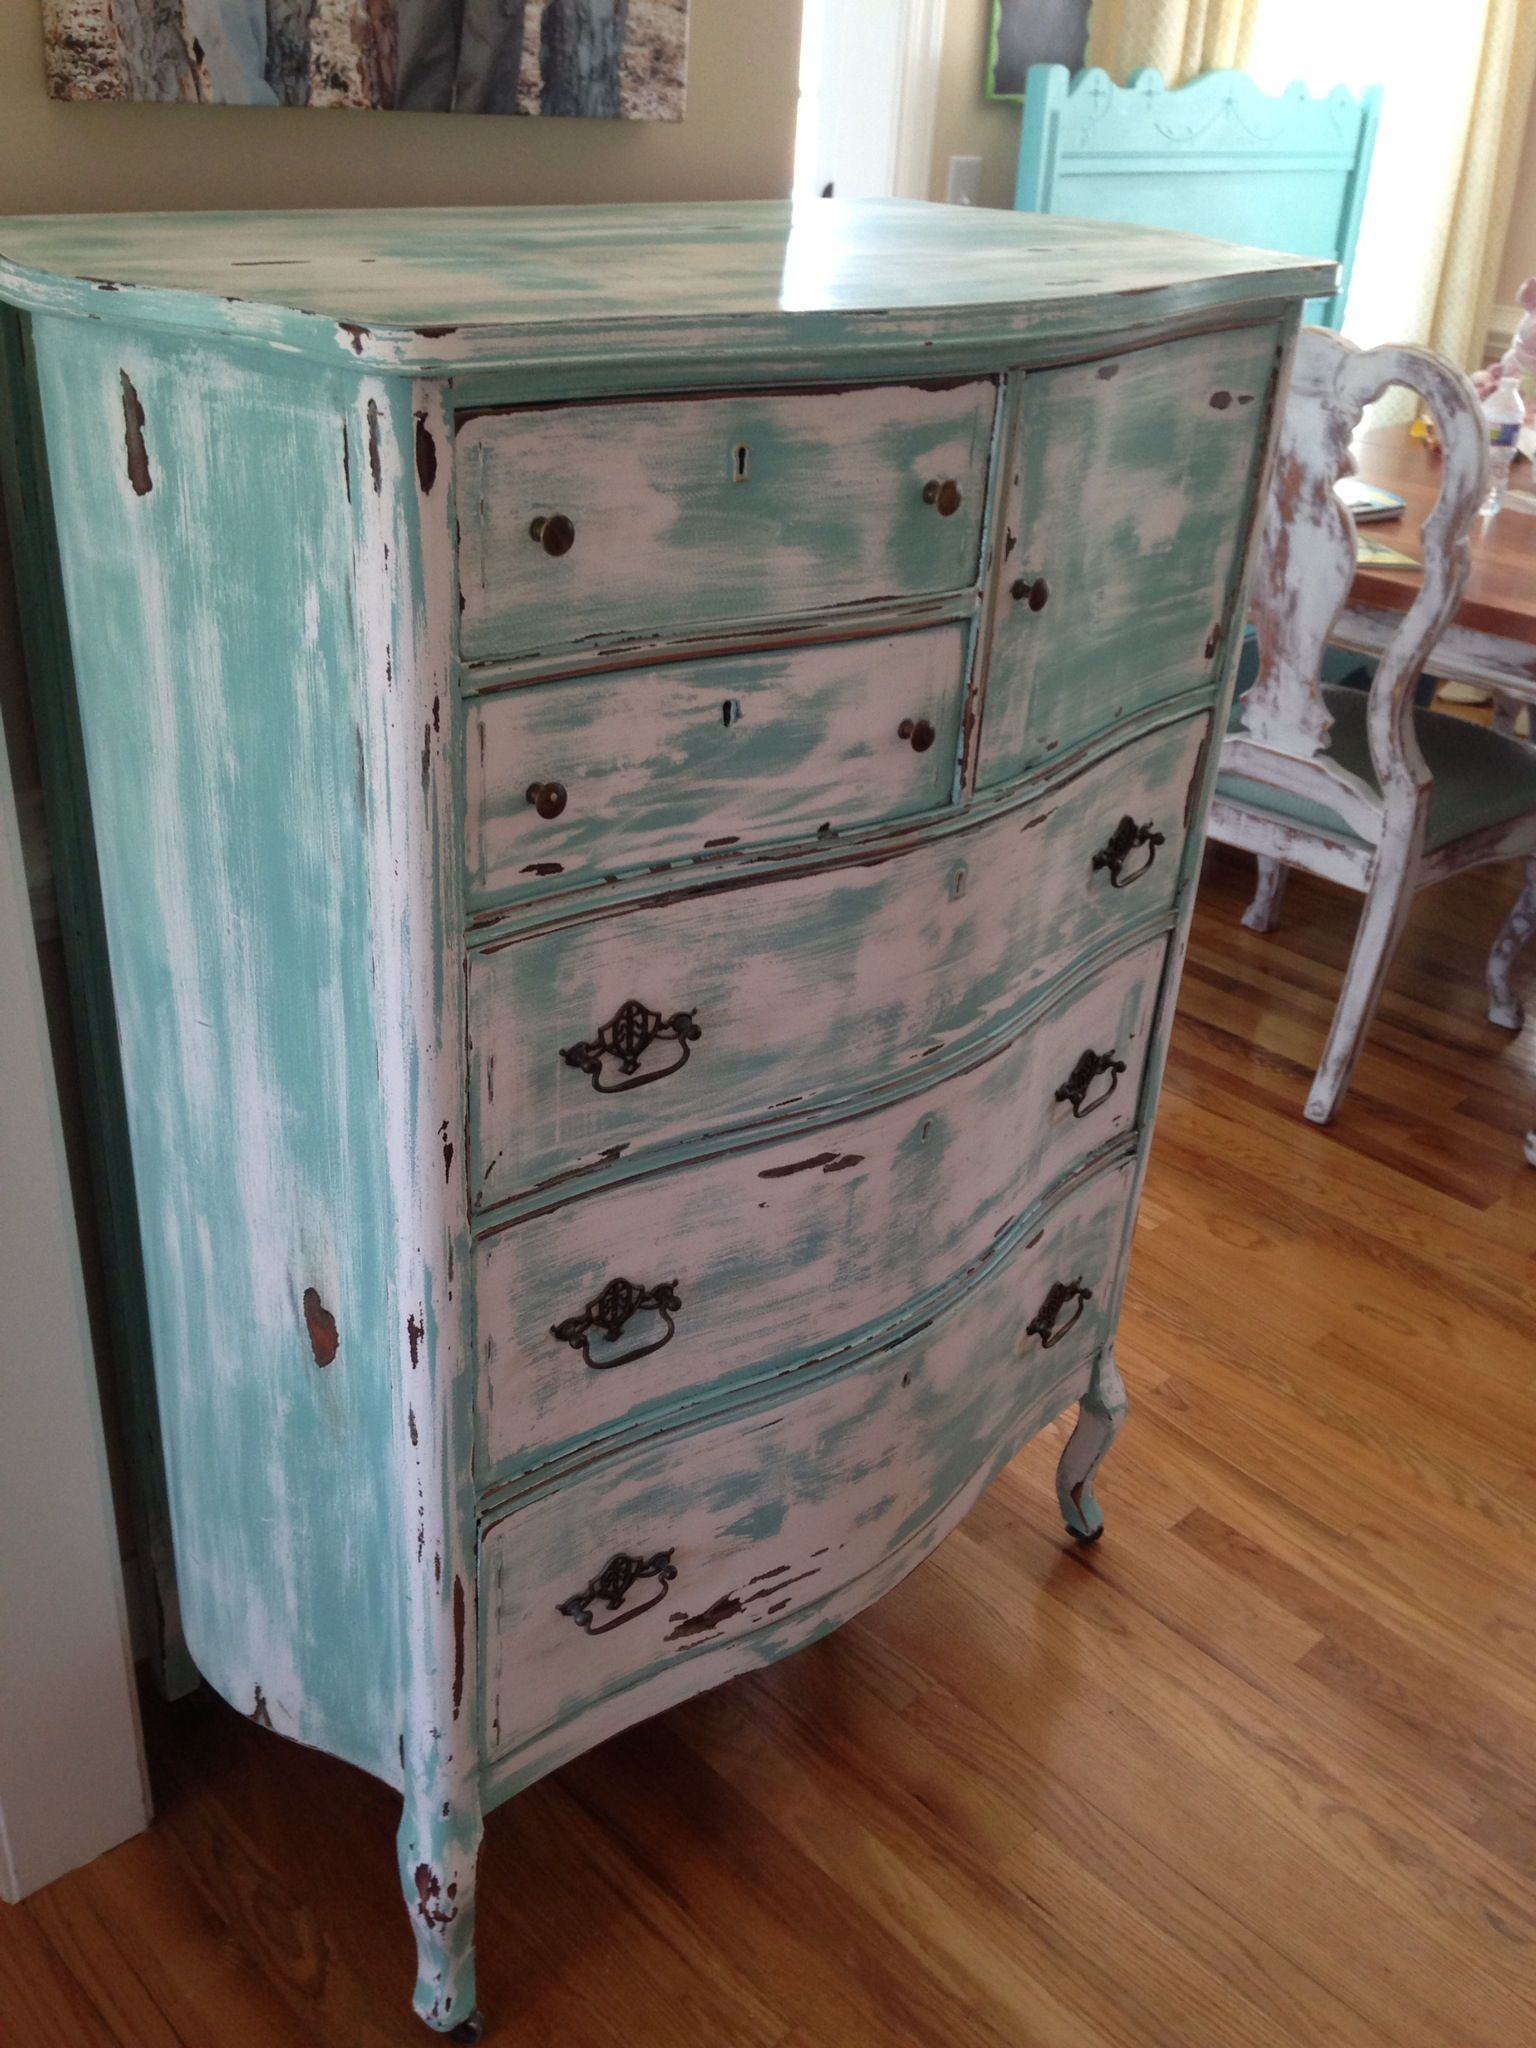 White Distressed Furniture antique chest of drawers .turquoise, white, distressed and aged